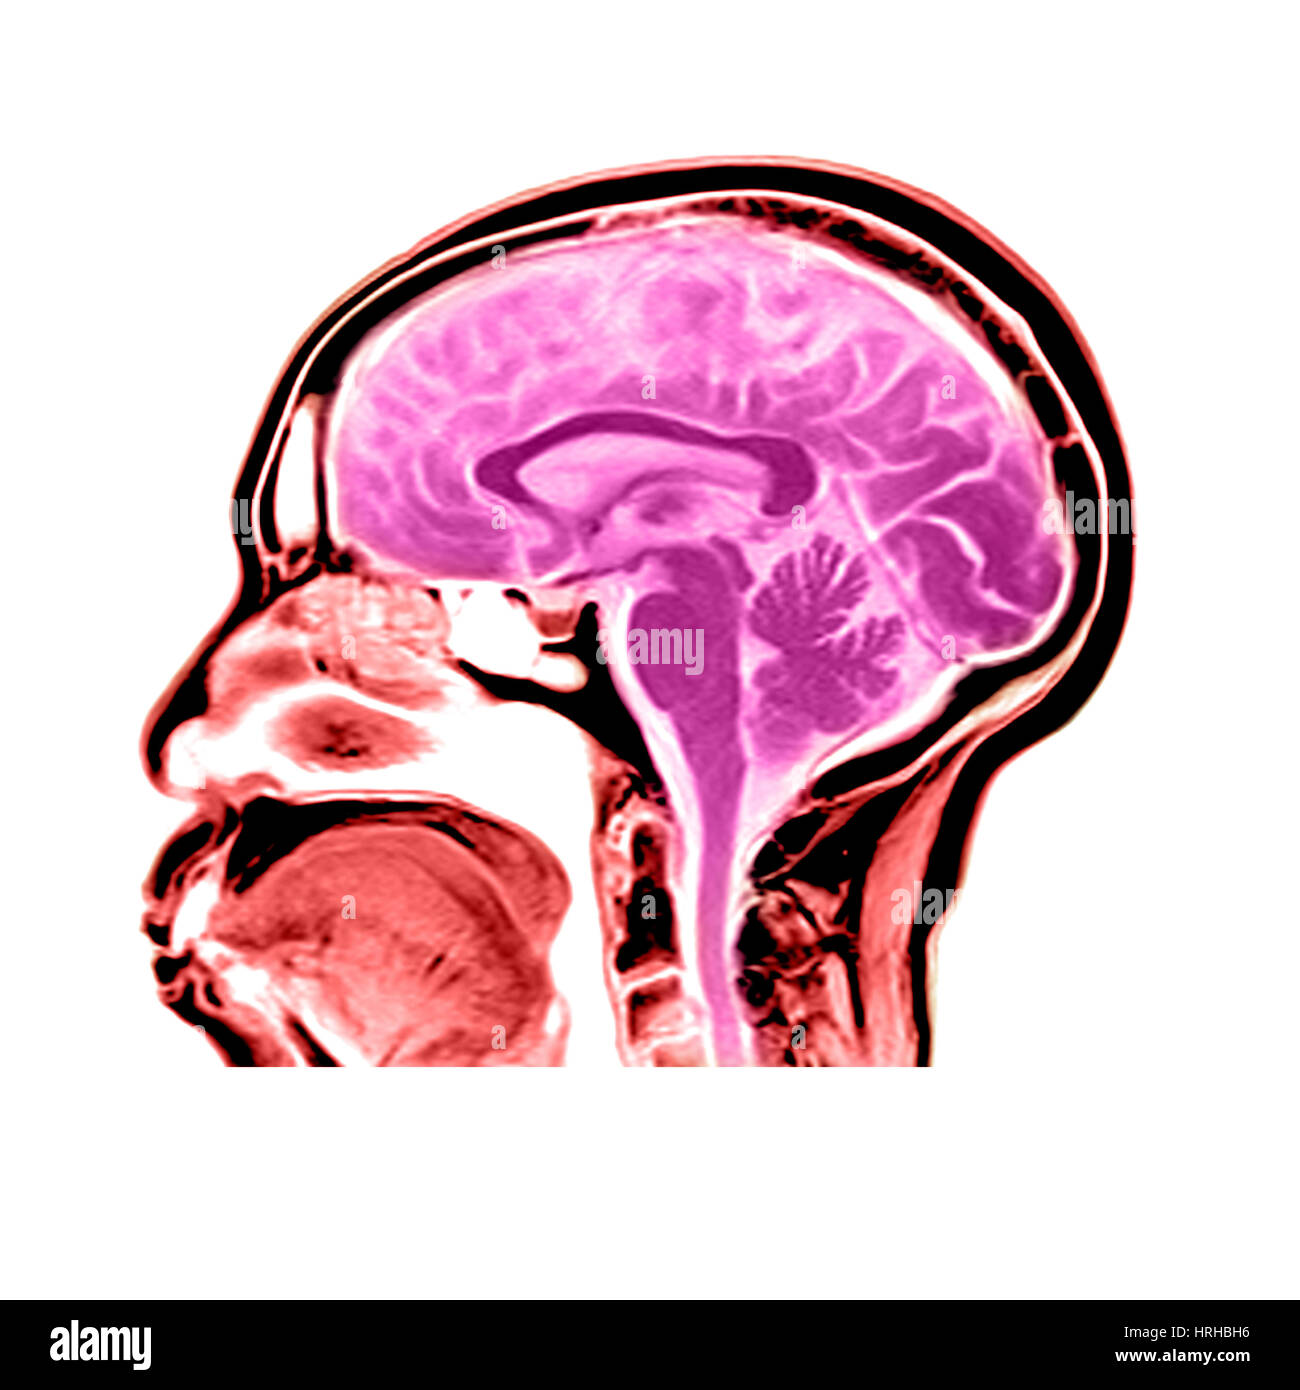 Sagittal View of an MRI of the Brain Stock Photo: 134991954 - Alamy